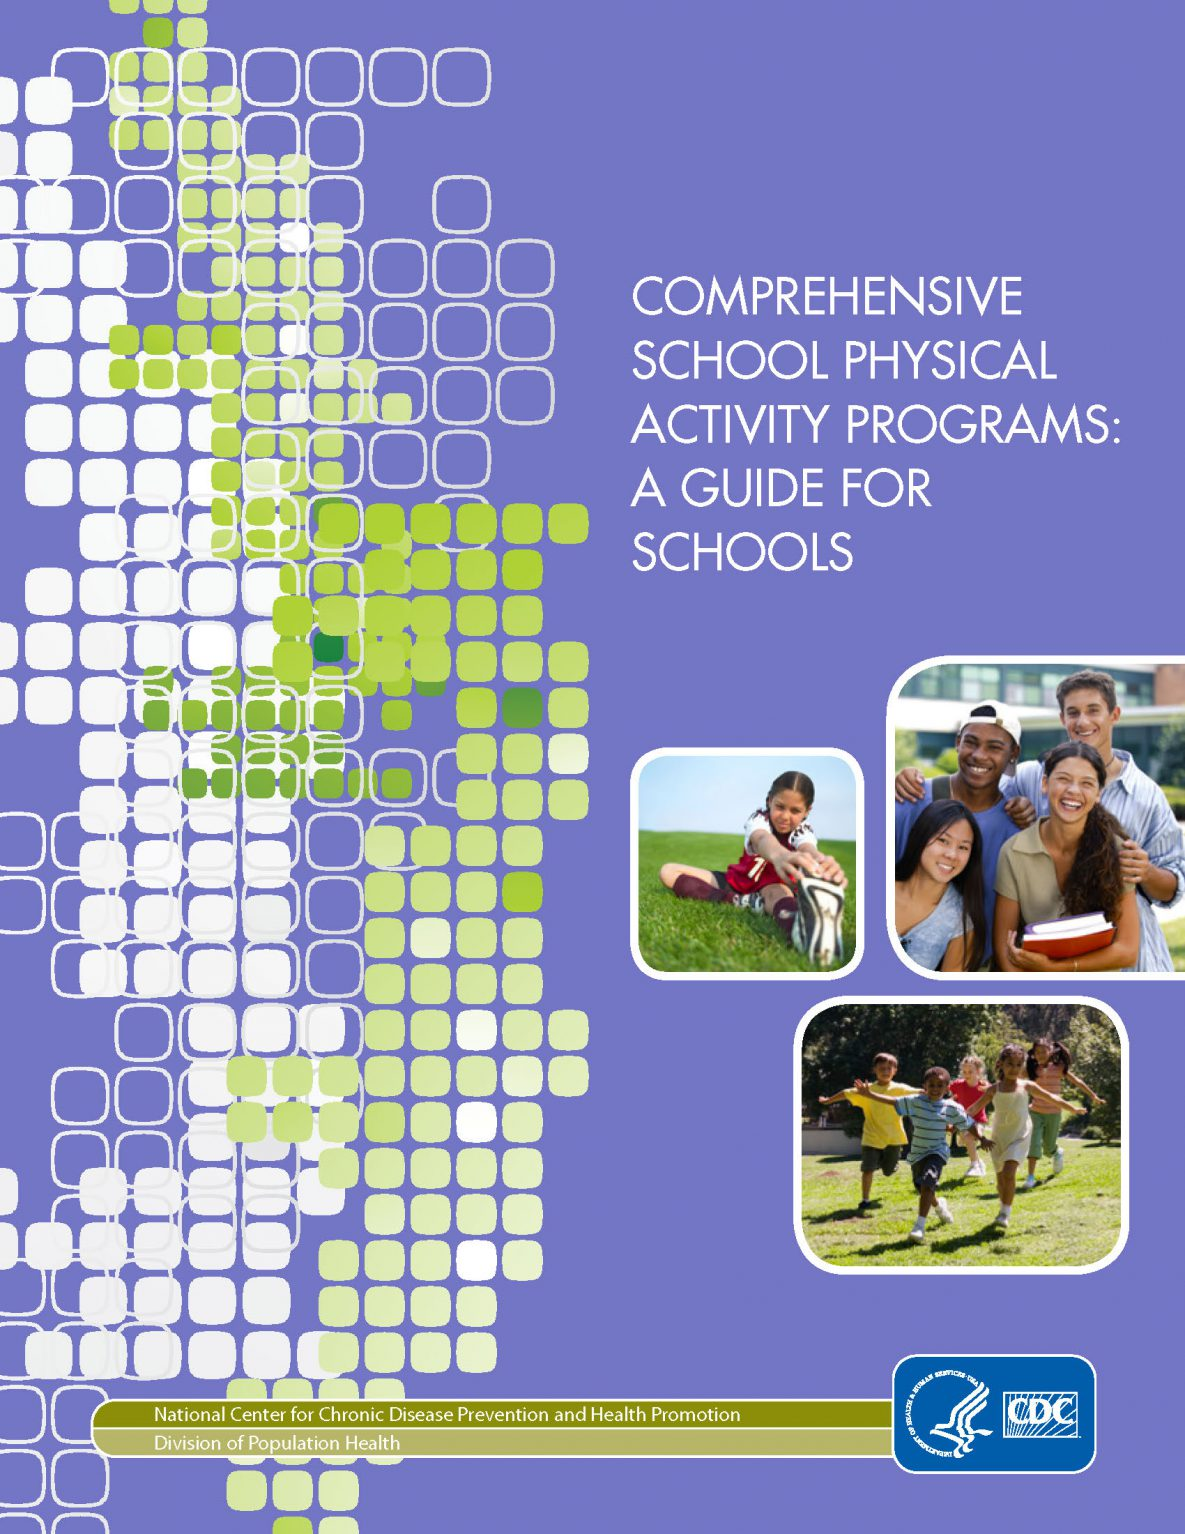 Comprehensive School Physical Activity Program (CSPAP): A Guide for Schools